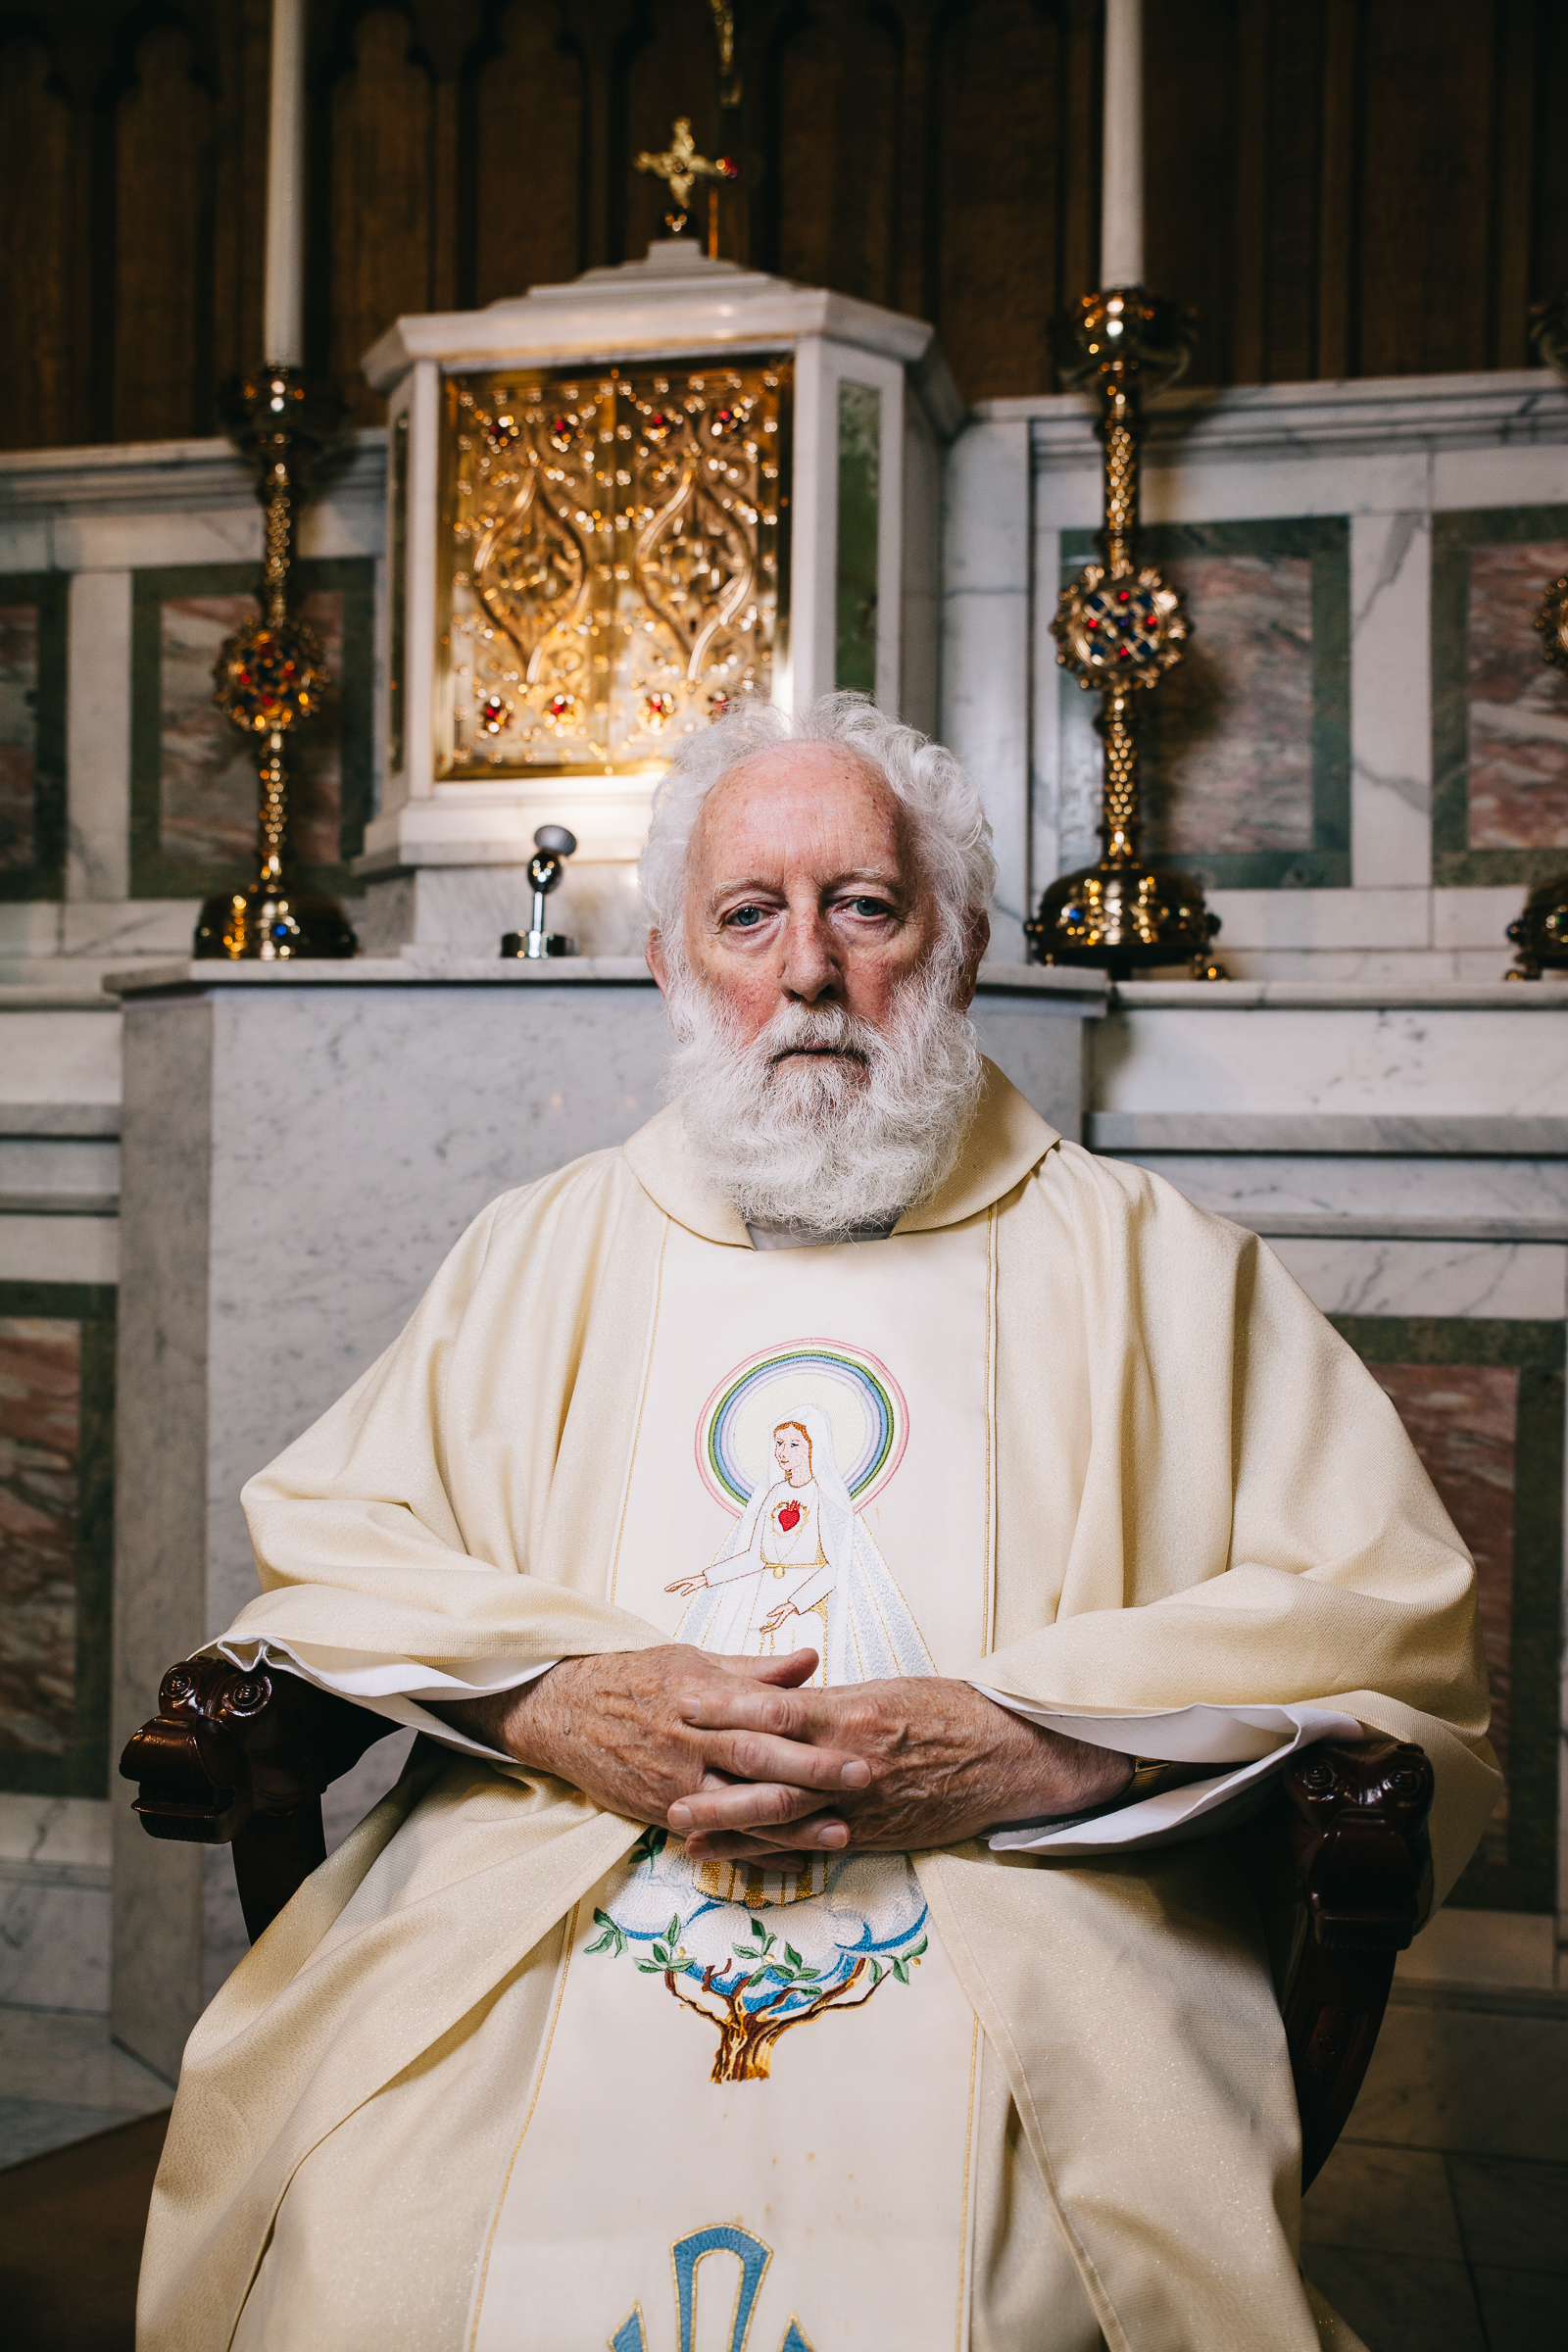 Quiet Reflection - Fr.Maher sits in his chair to reflect on the most incredible moment the earth will ever experience where God descends to us in the mystery of the Mass. His eyes were closed and he surprised me by opening them so I captured that moment.